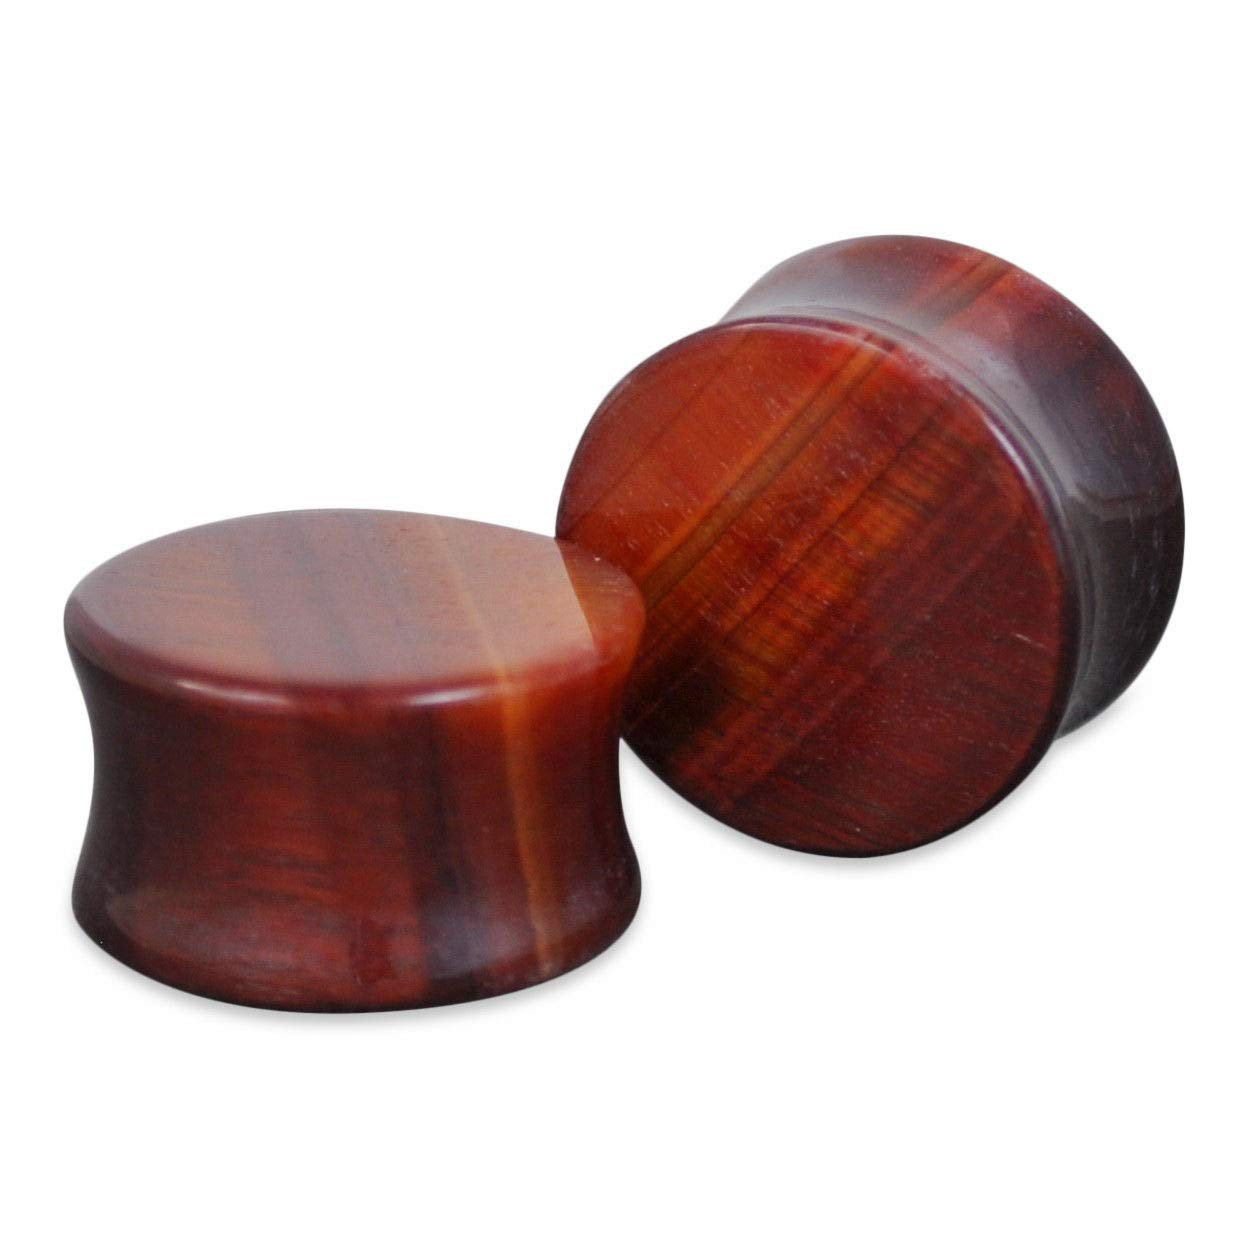 1 Pair of Genuine Red Tiger Eye Organic Natural Polished Stone Ear Plugs Saddle 05 mm